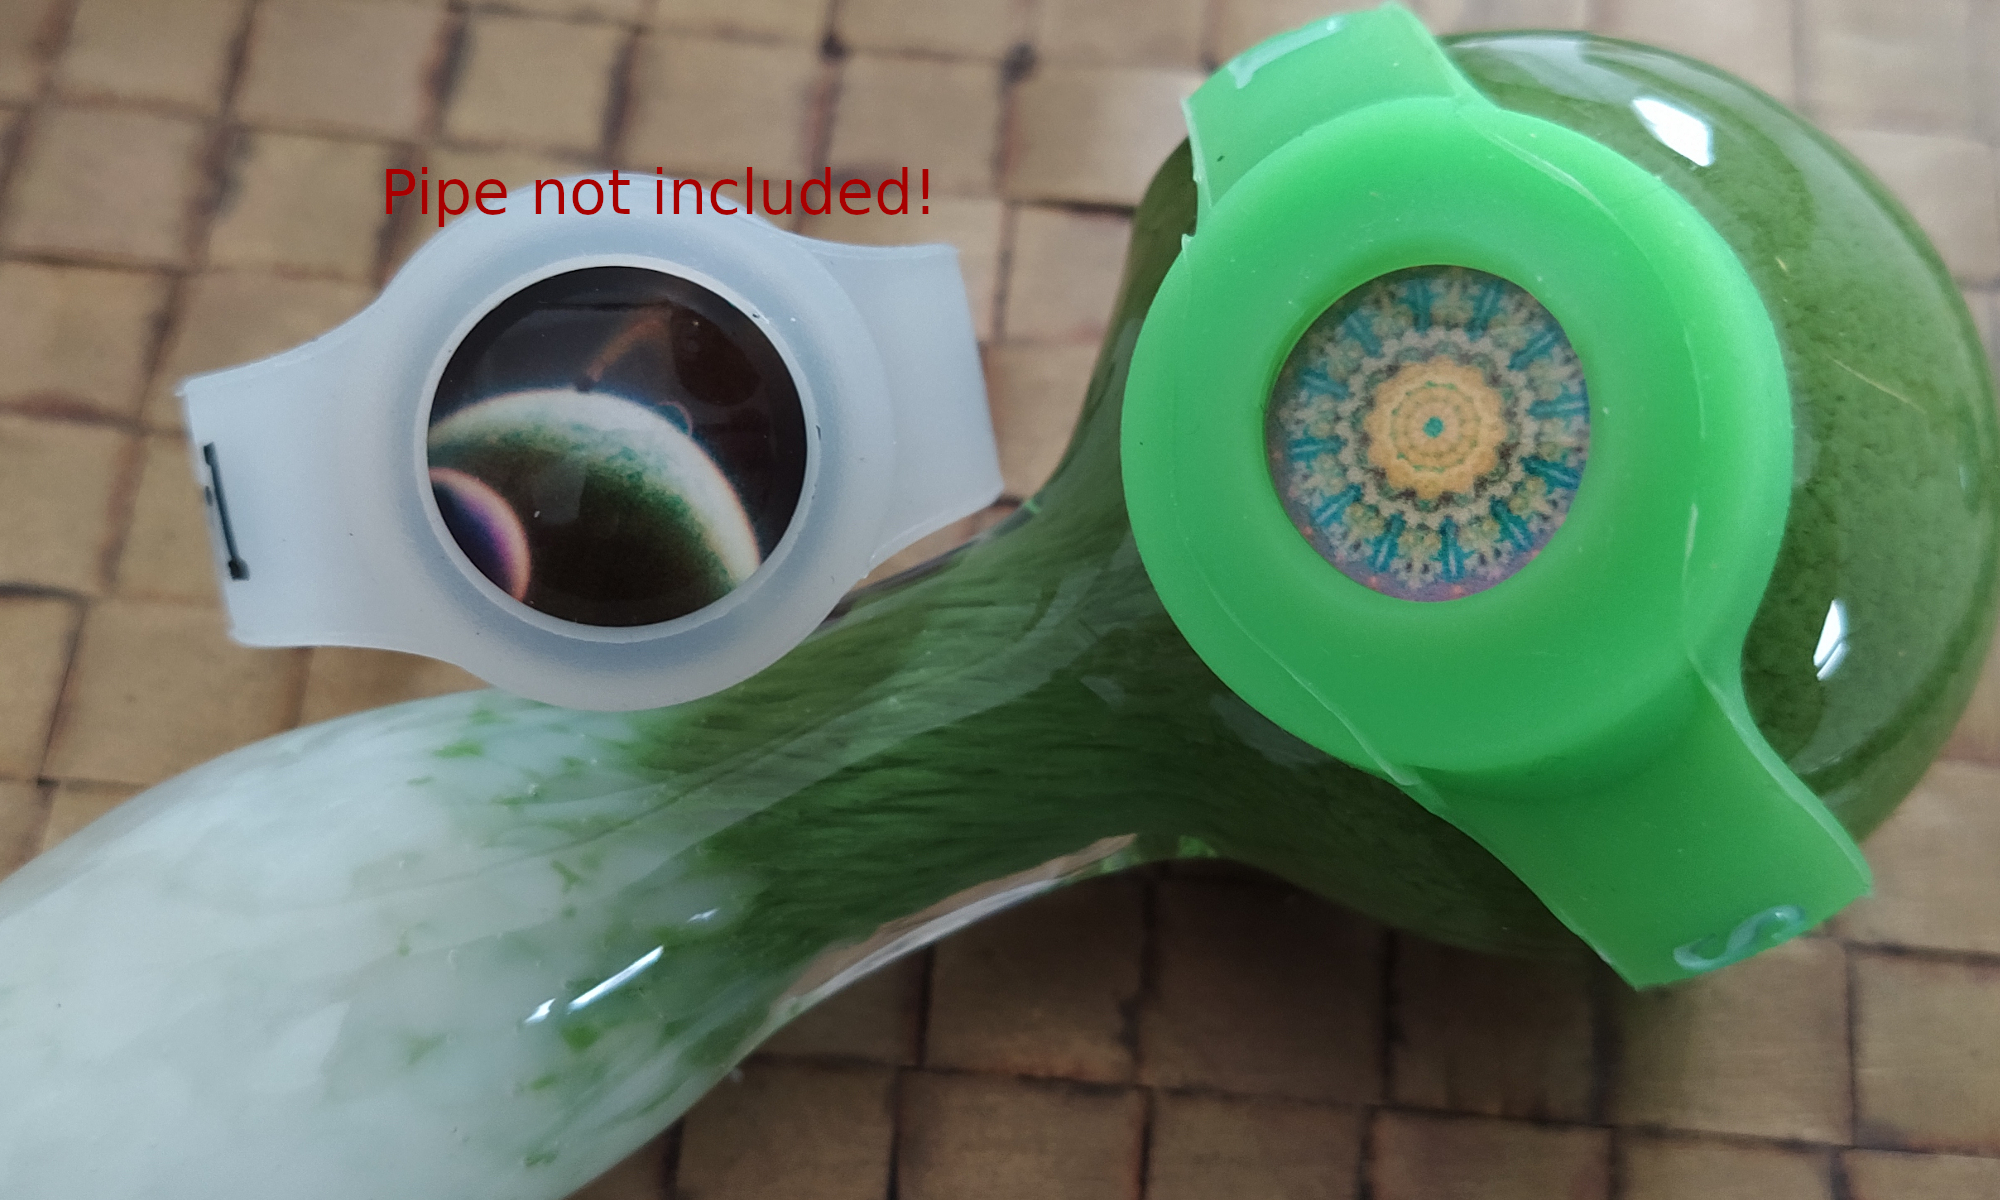 main product picture - cabochon save-a-bowl on a green glass pipe